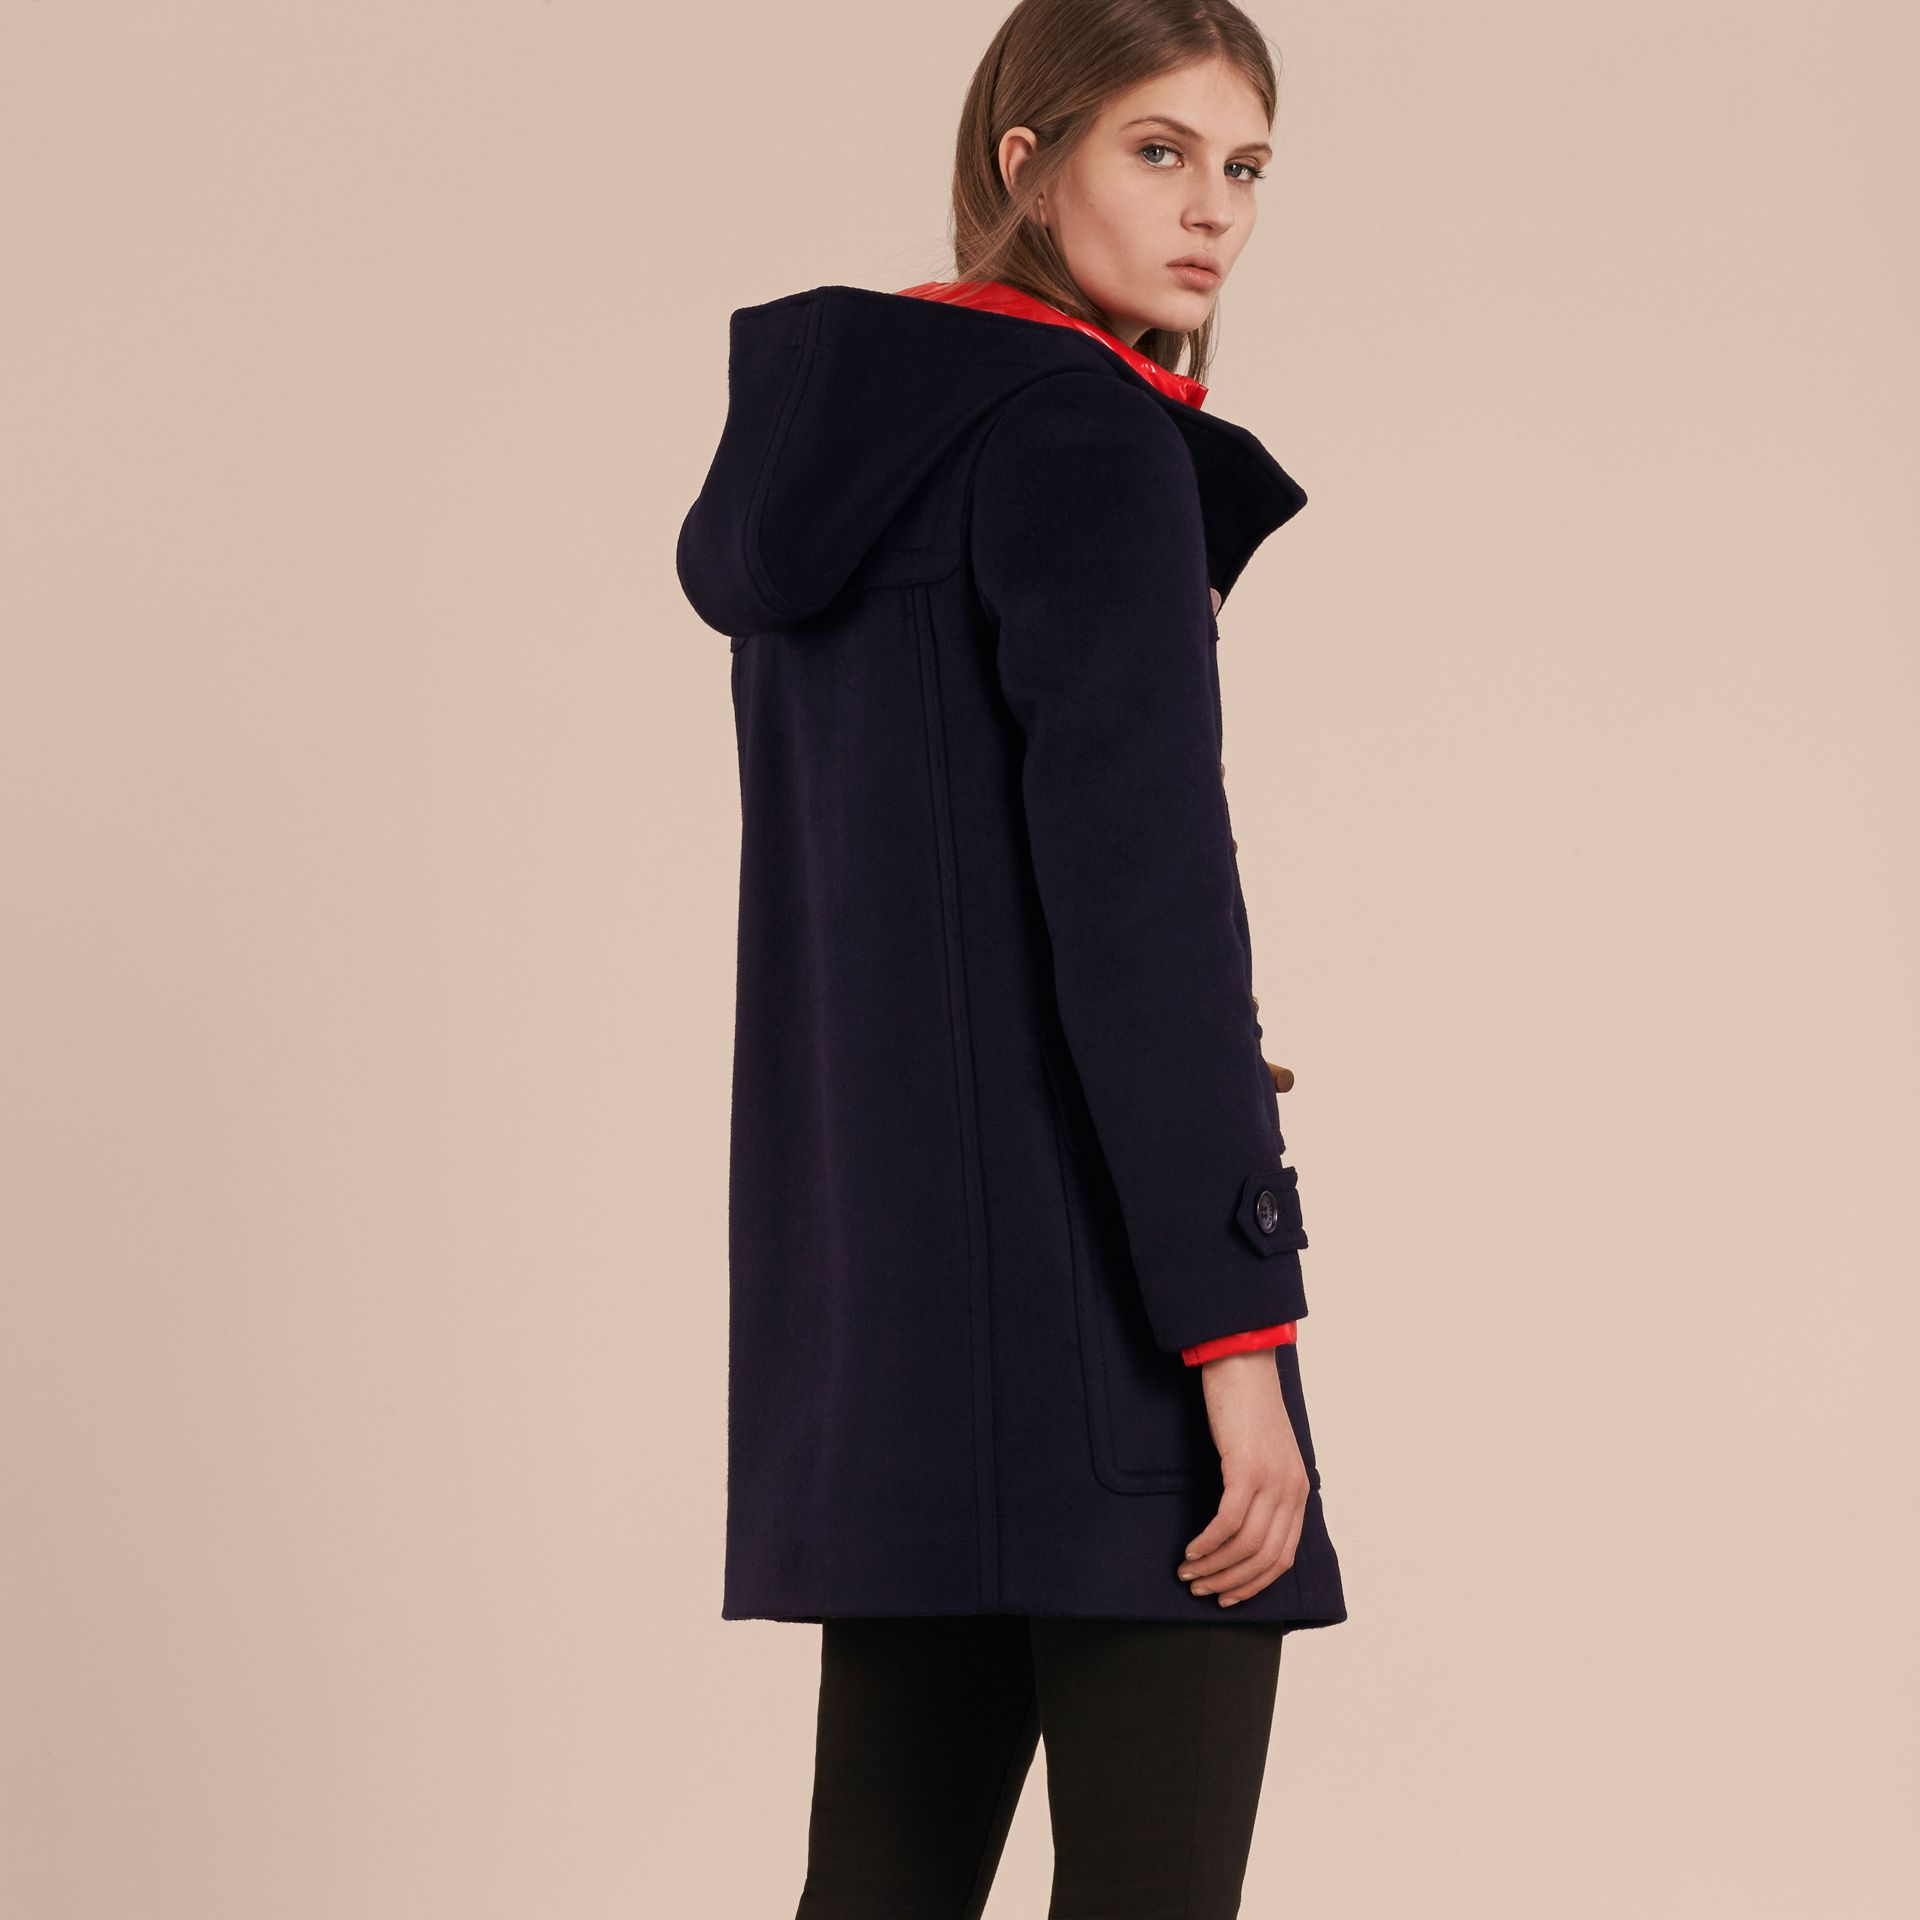 Wool Duffle Coat with Detachable Hooded Down-filled Warmer in Navy Check - gallery image 3